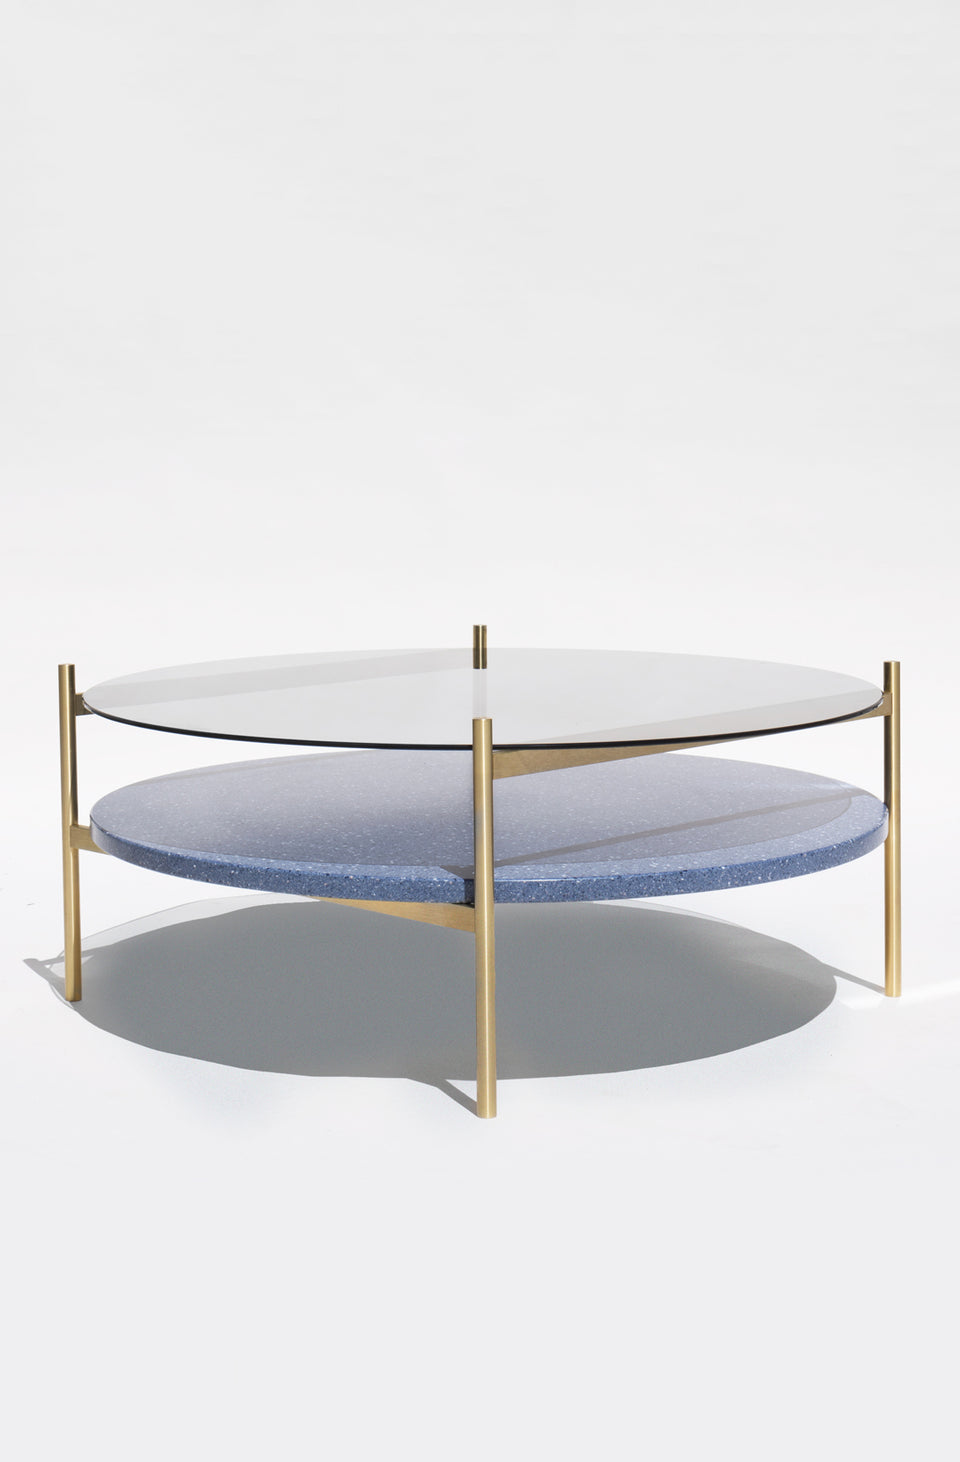 Duotone Circular Coffee Table - Brass Frame / Smoked Glass / Blue Mosaic